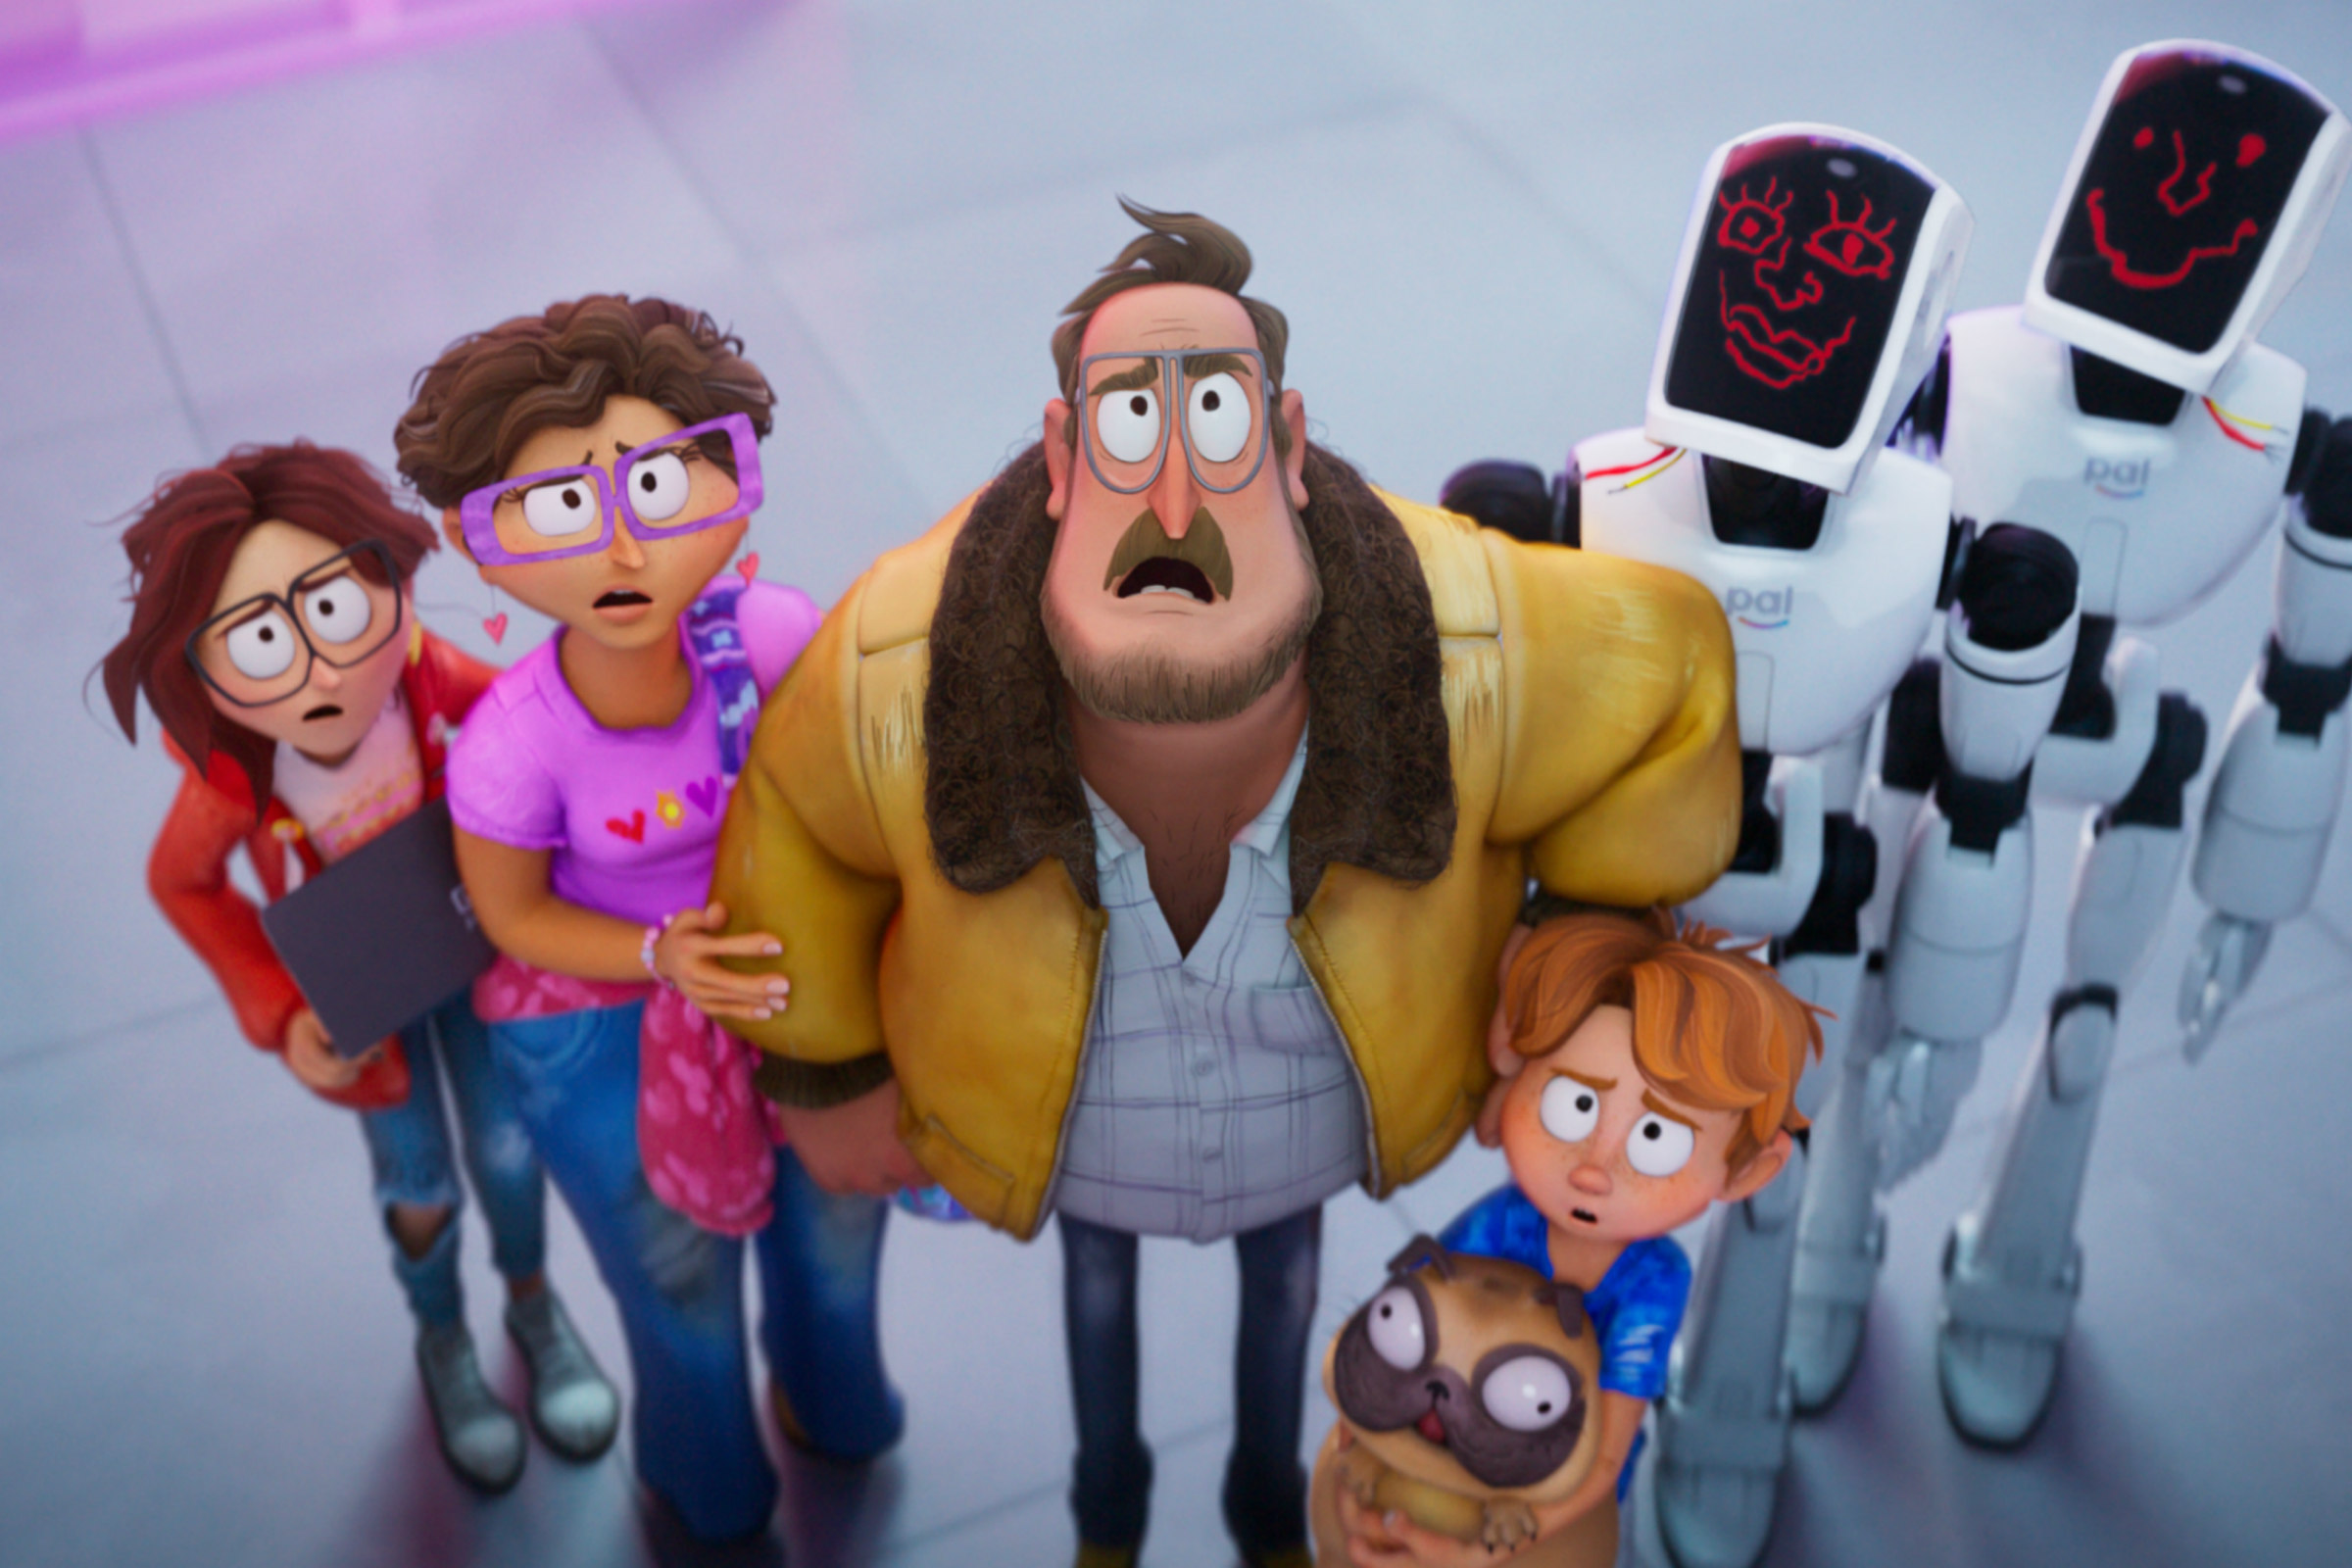 Katie, Linda, Rick, and Aaron, a white animated family, stands together with two robots in The Mitchells vs. the Machines